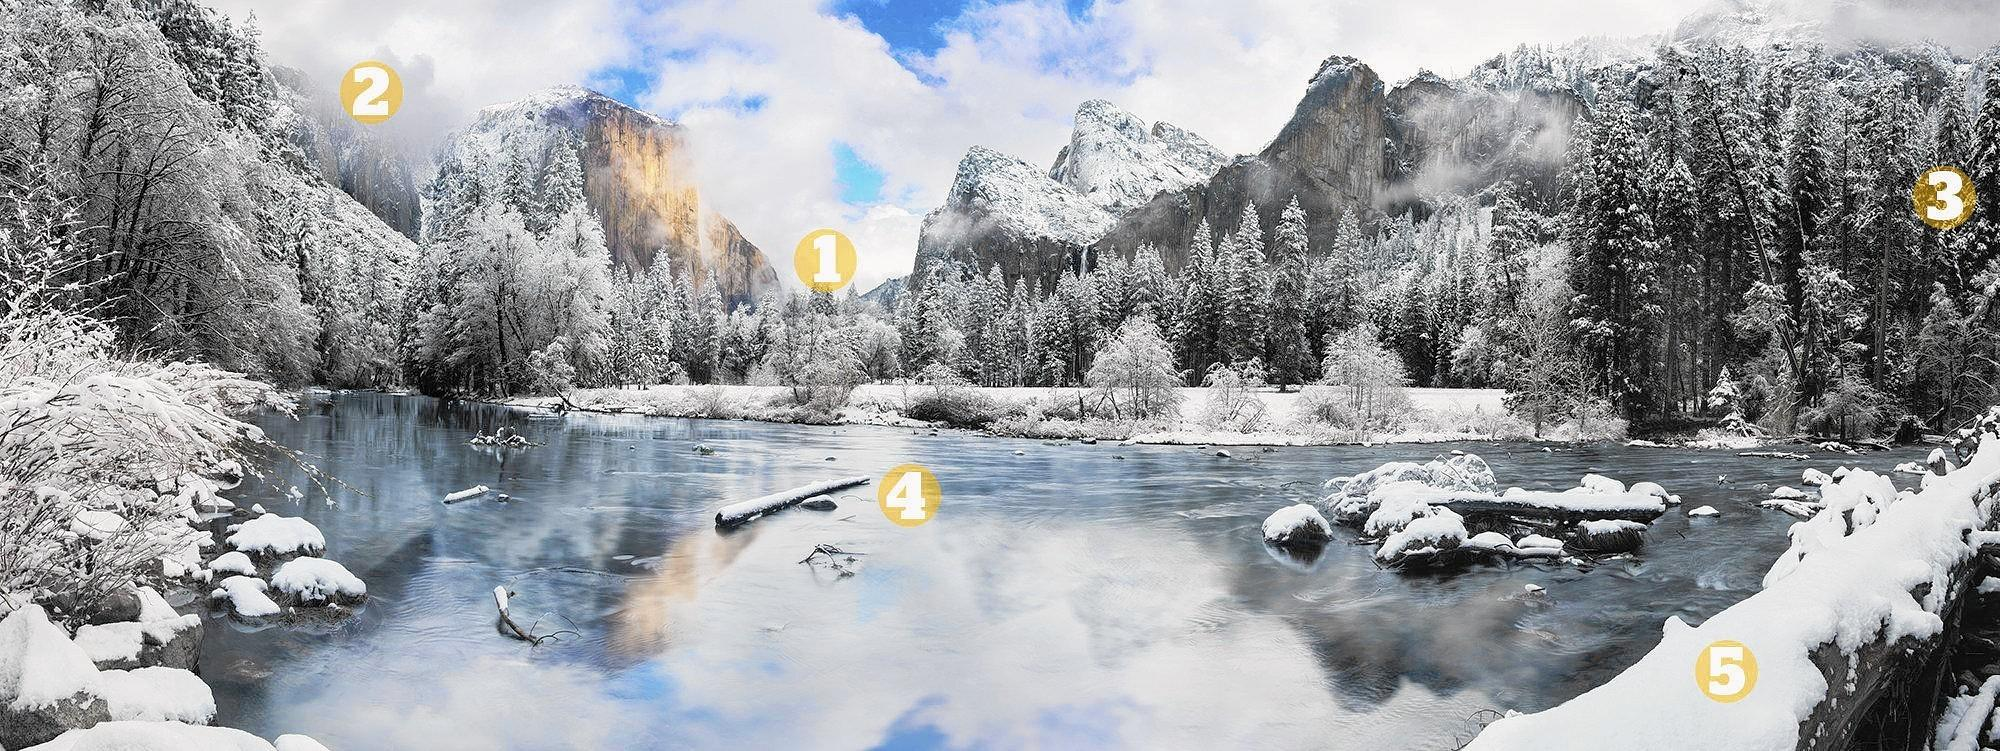 """Forest & Ocean Gallery unveils Cheyne Walls' newest fine art photograph, """"Gates of the Valley,"""" captured in the valley of Yosemite National Park. The event is from 6 to 9 p.m. Saturday."""